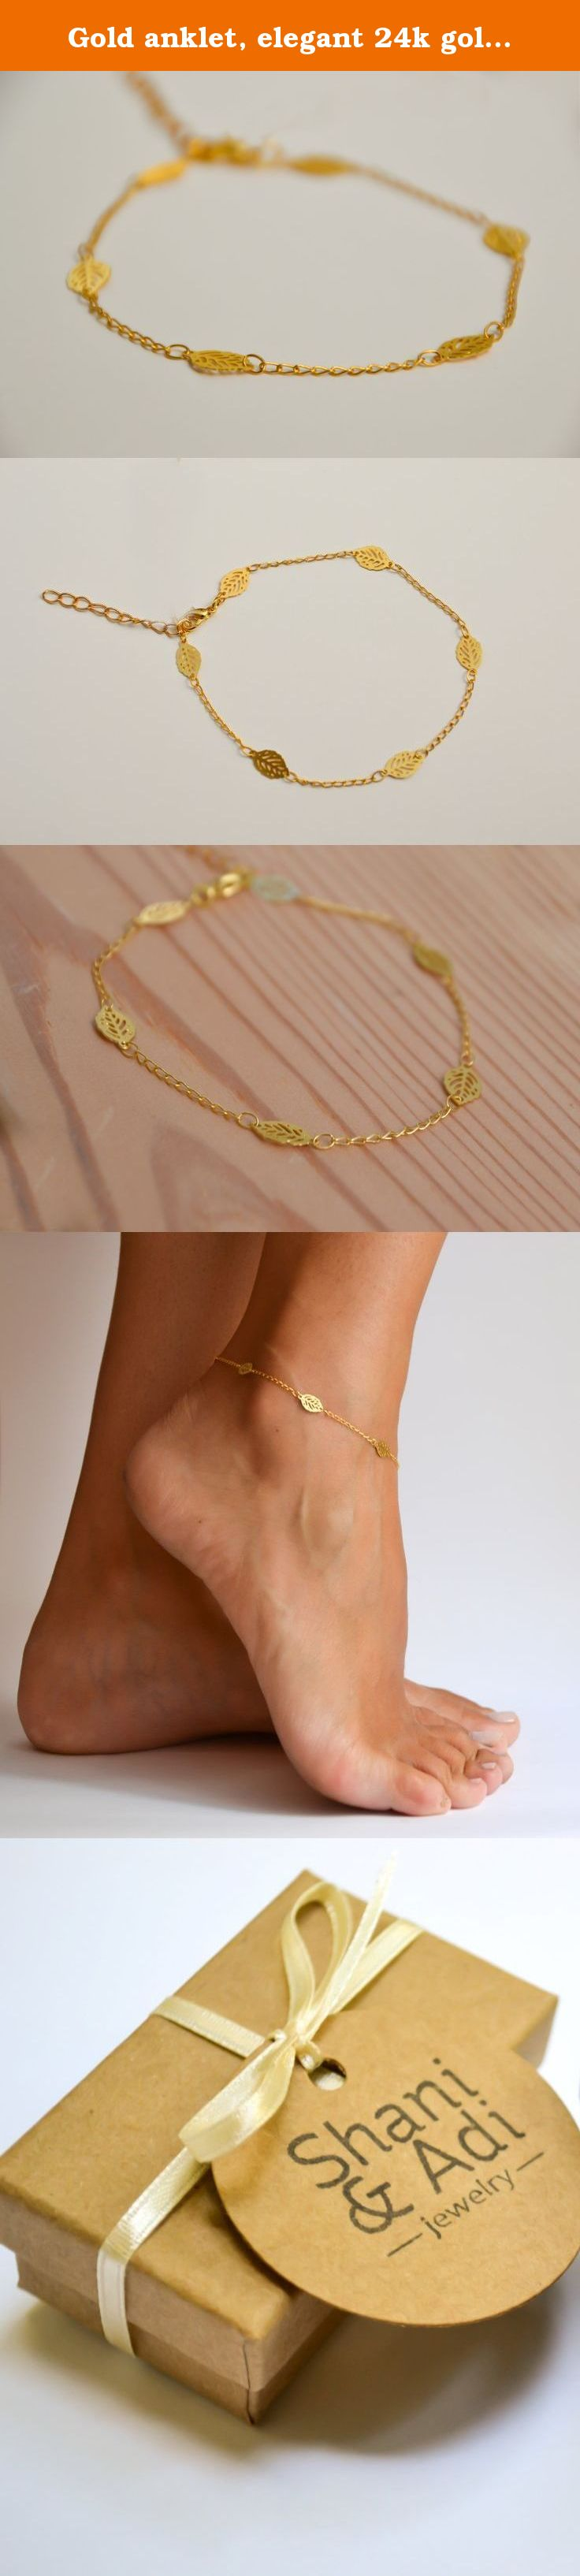 heart link anklet sterling ankle with search bracelet list silver women anklets cfm gold jewelry yellow bracelets s charms womens